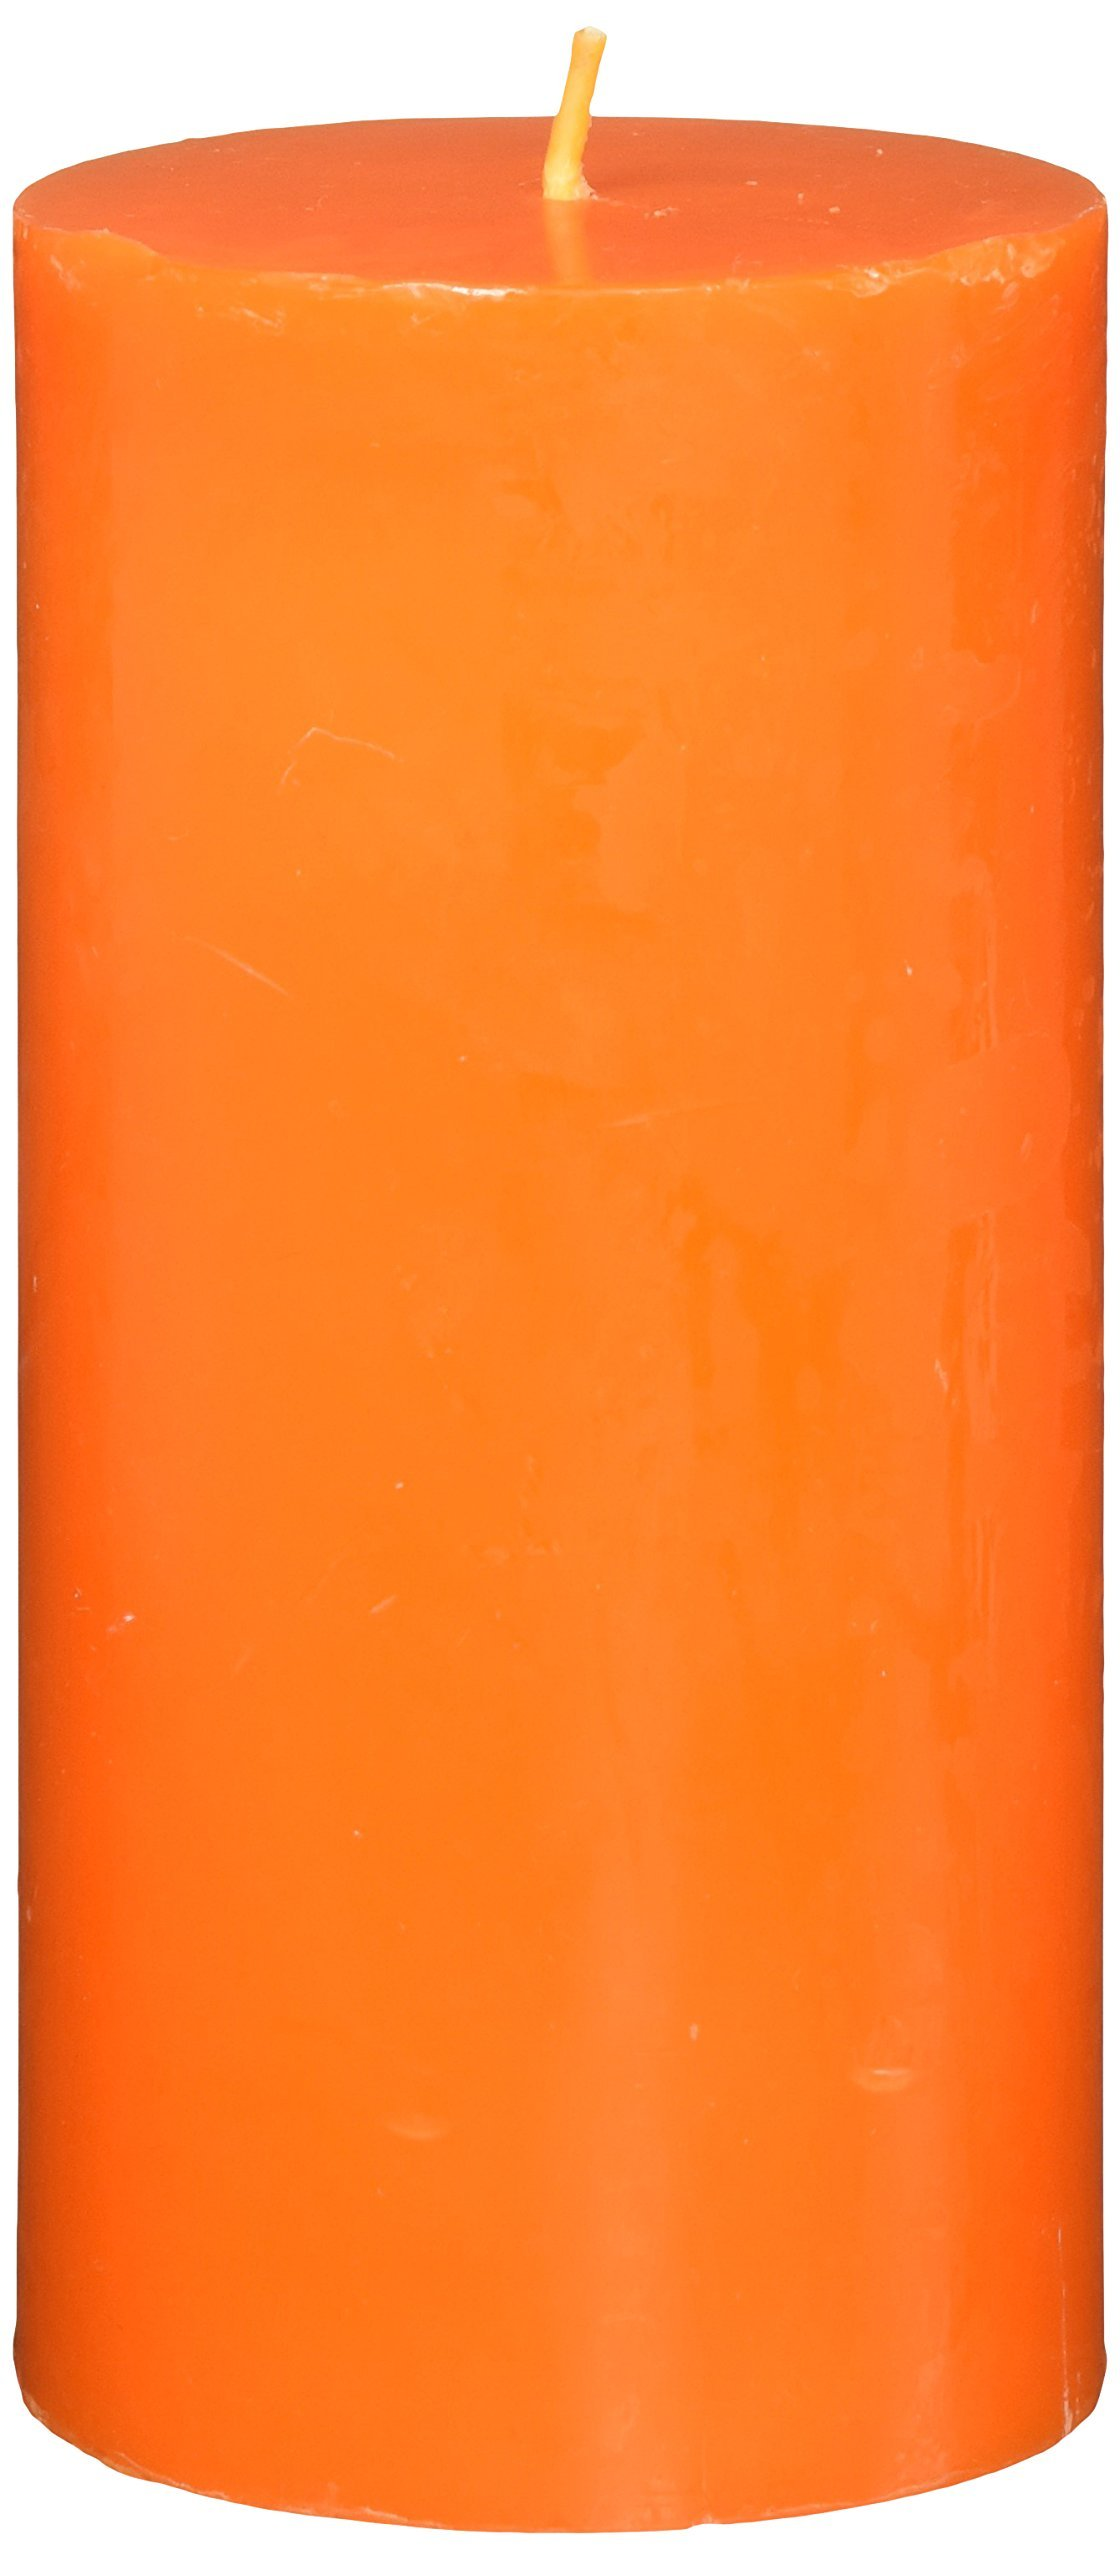 Zest Candle Pillar Candle, 3 by 6-Inch, Orange